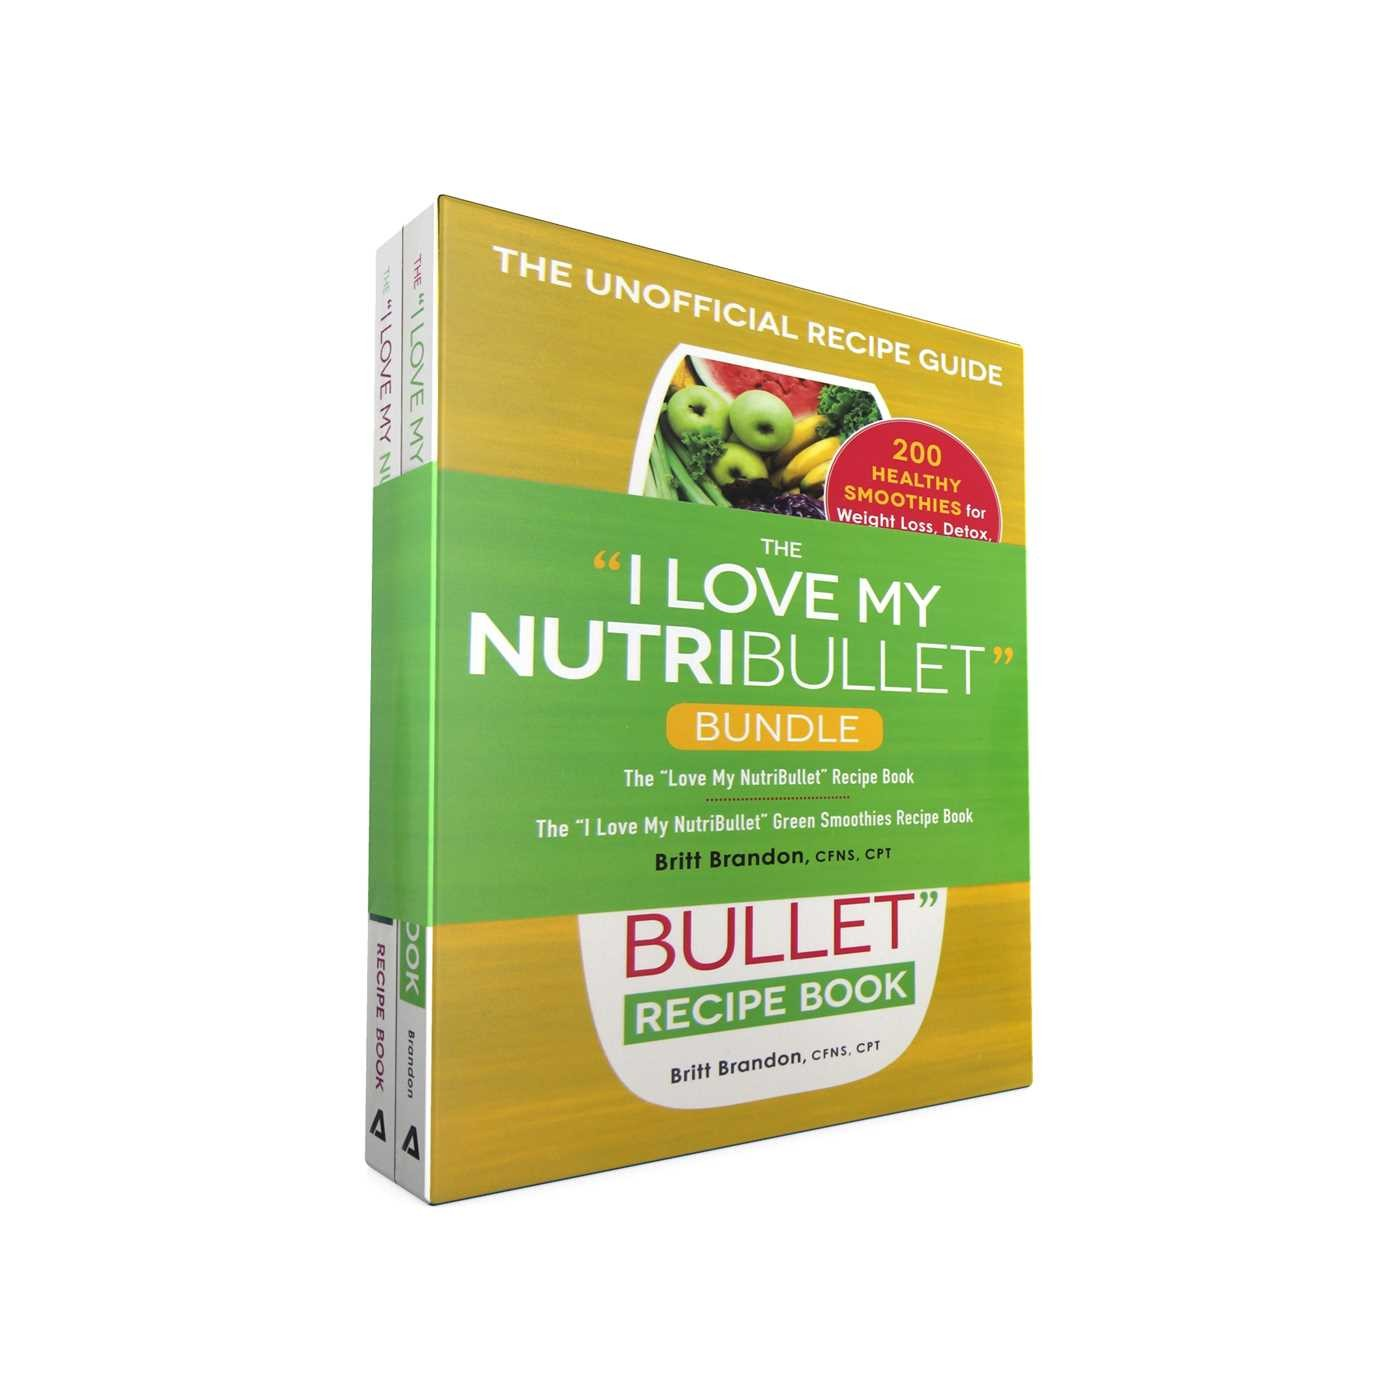 The i love my nutribullet collection 9781507206829.in17